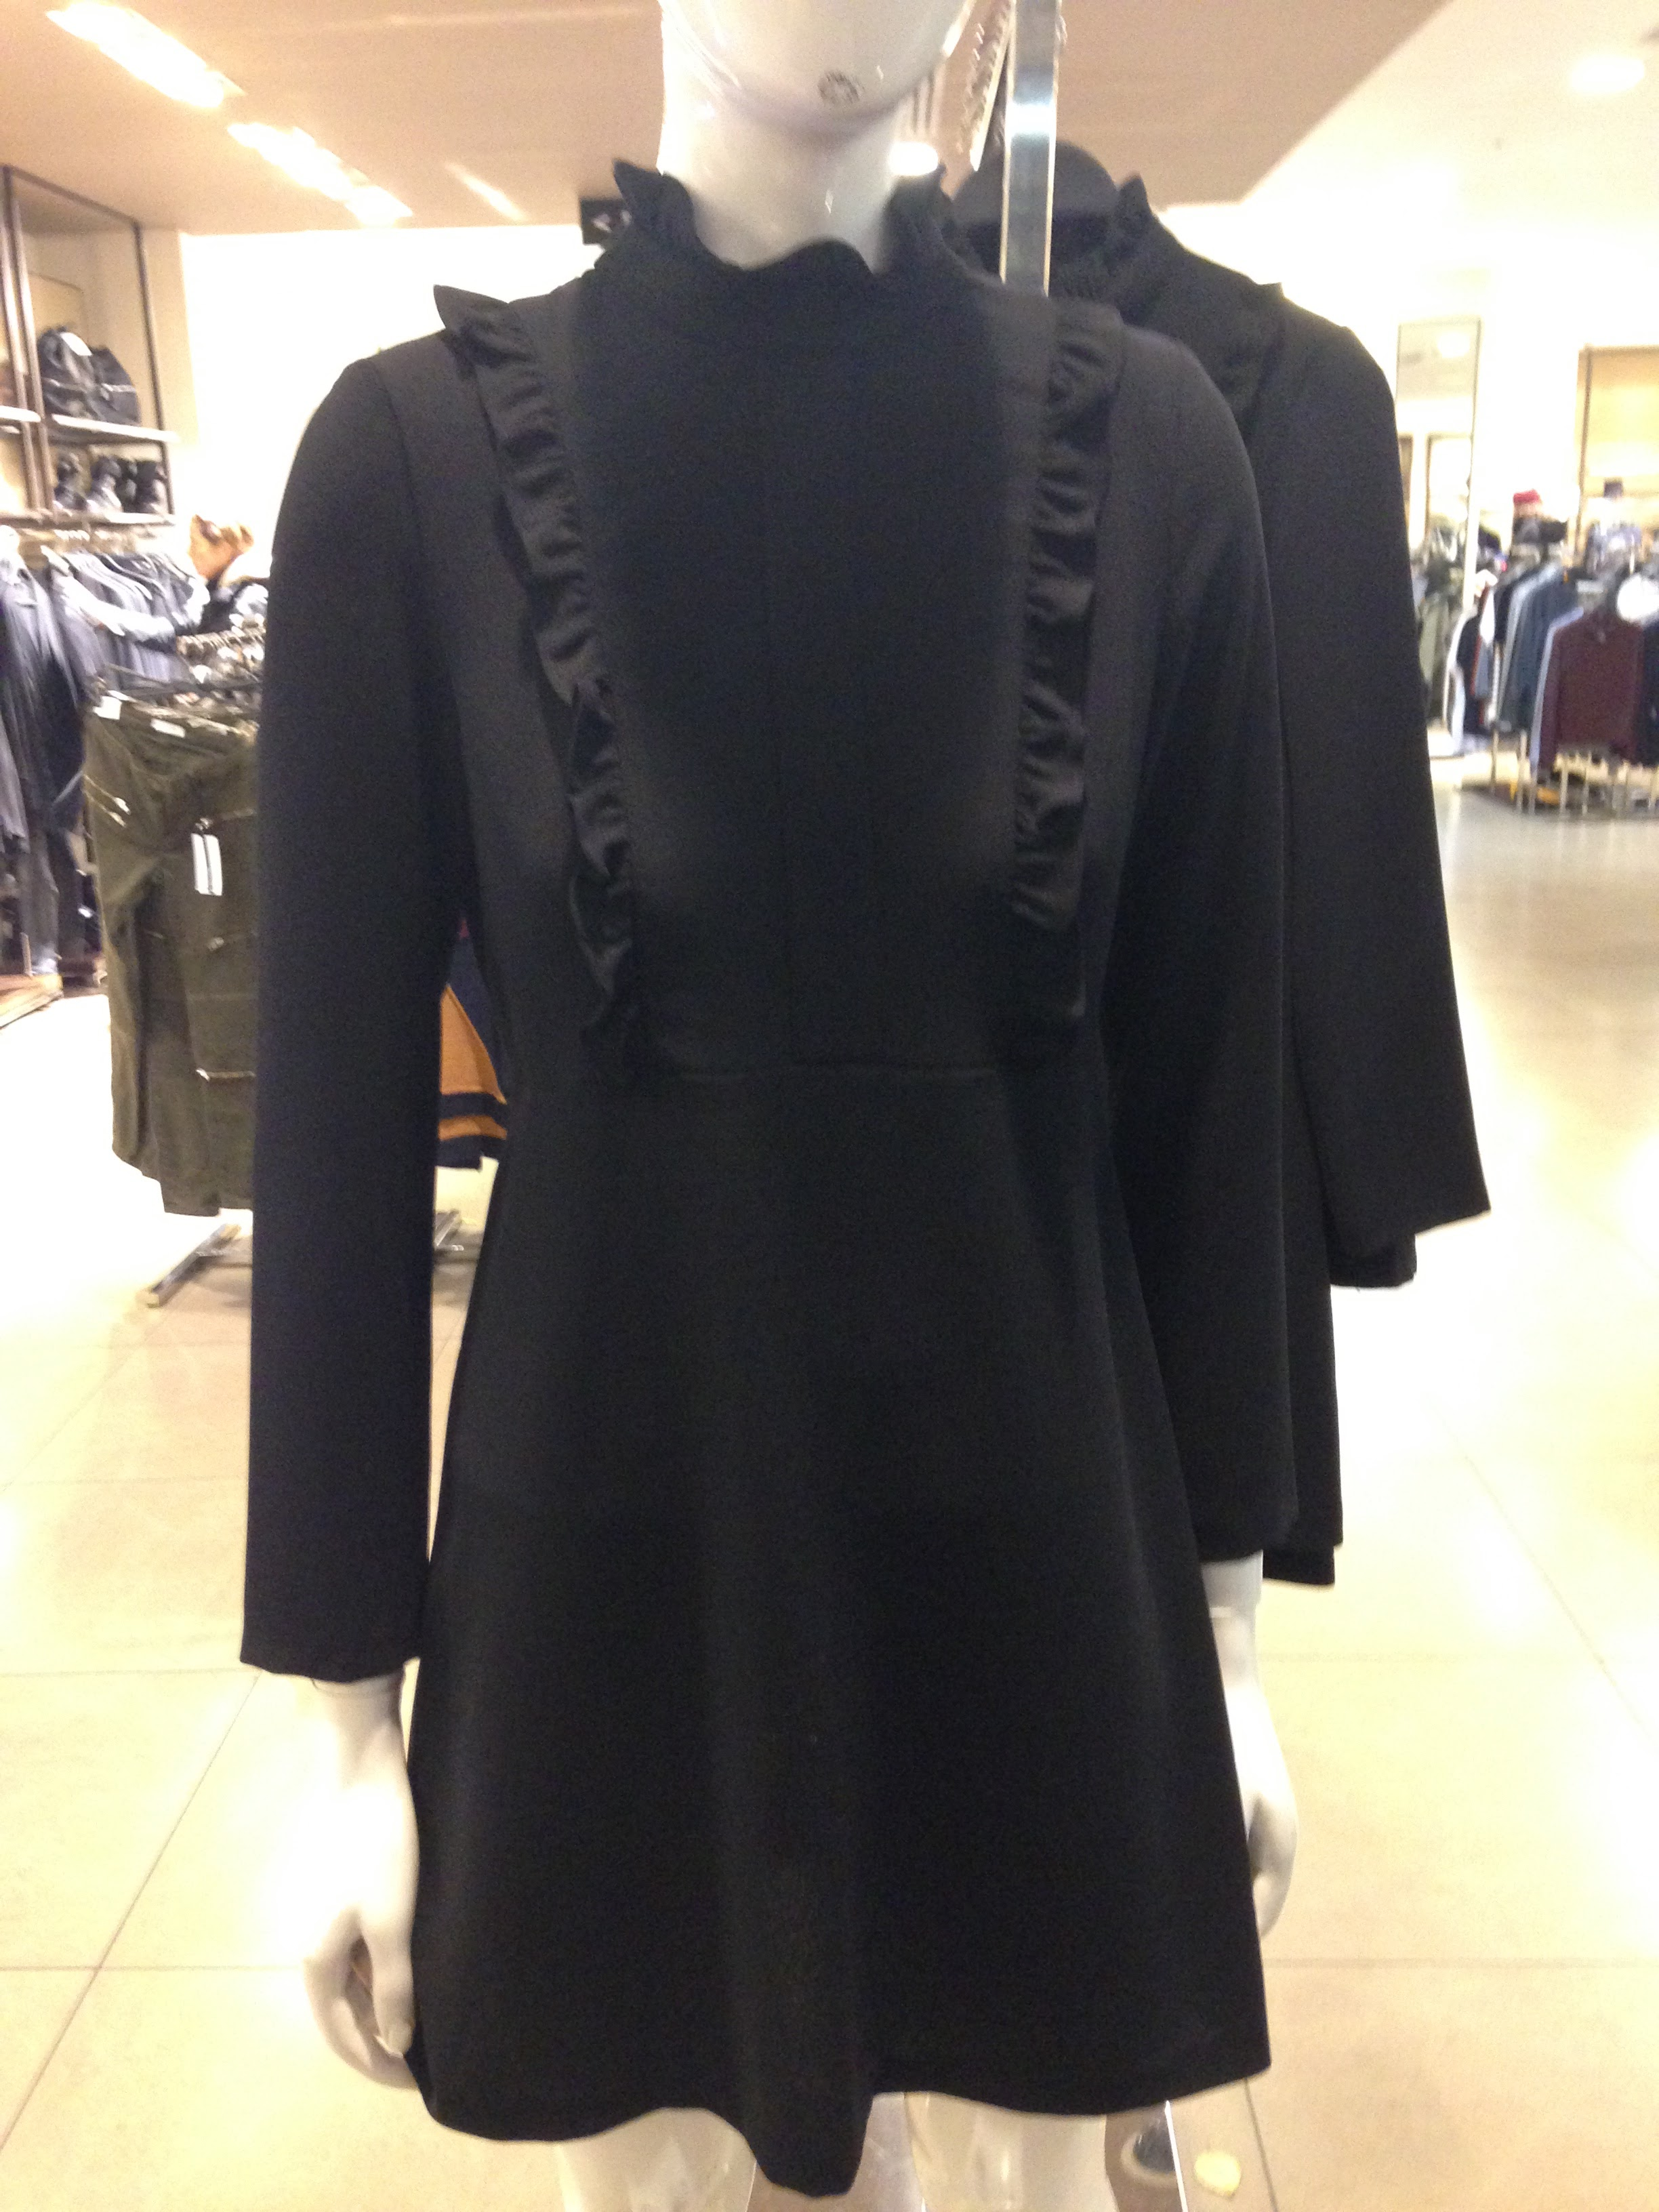 Zara! Great and versatile short black dress for a casual Goth or Glitz it up for evening. Love the fact its got long sleeves. €49.99 BEST BUY!